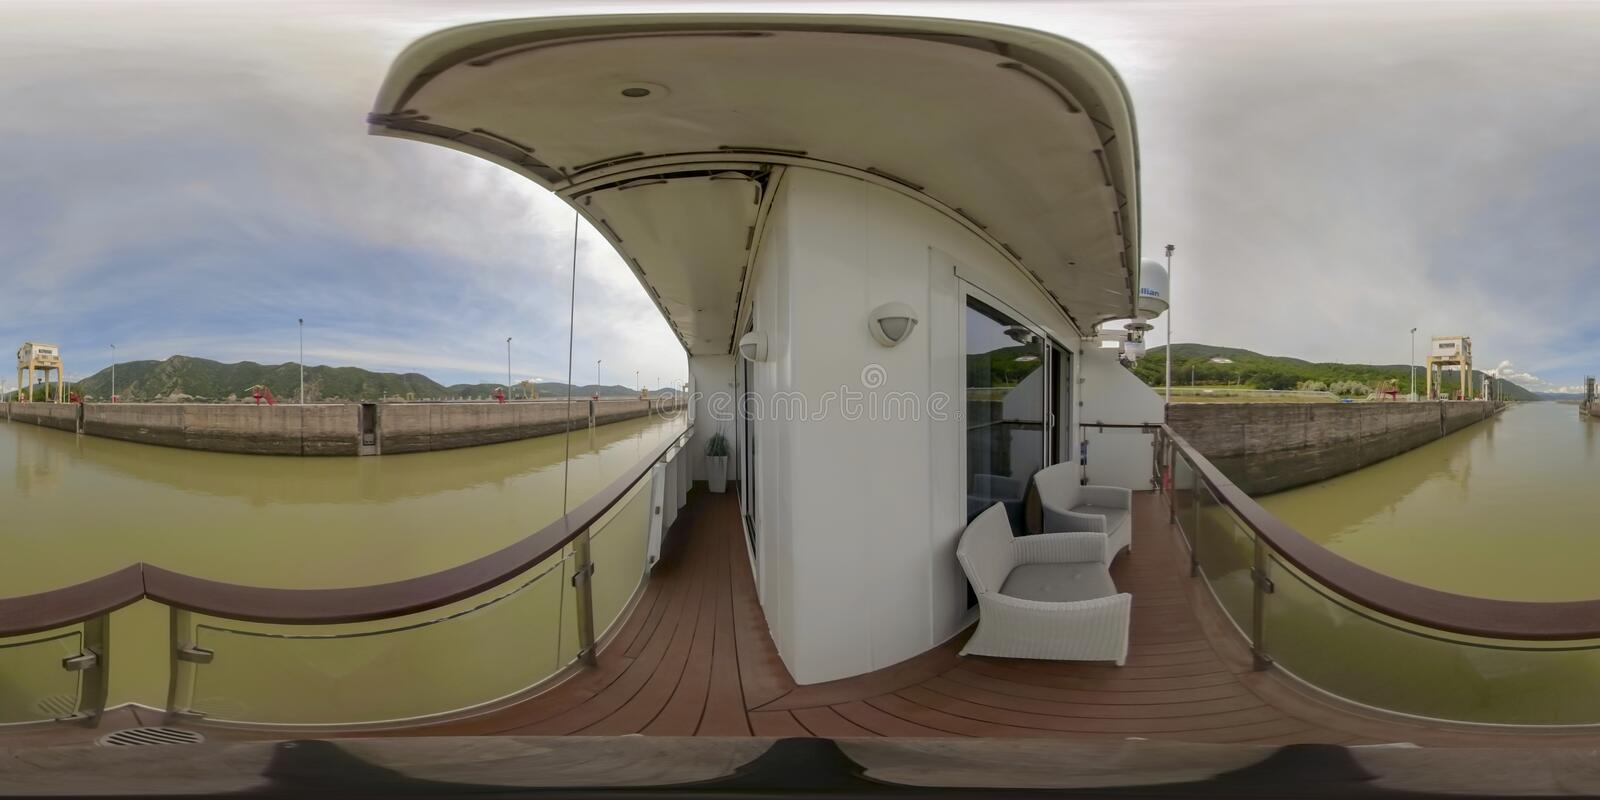 360VR Cruising through Iron Gate2 Locks. 360VR cruising on riverboat through the Iron Gate 2 hydroelectric power plant locks on the Danube River between Serbia royalty free stock image